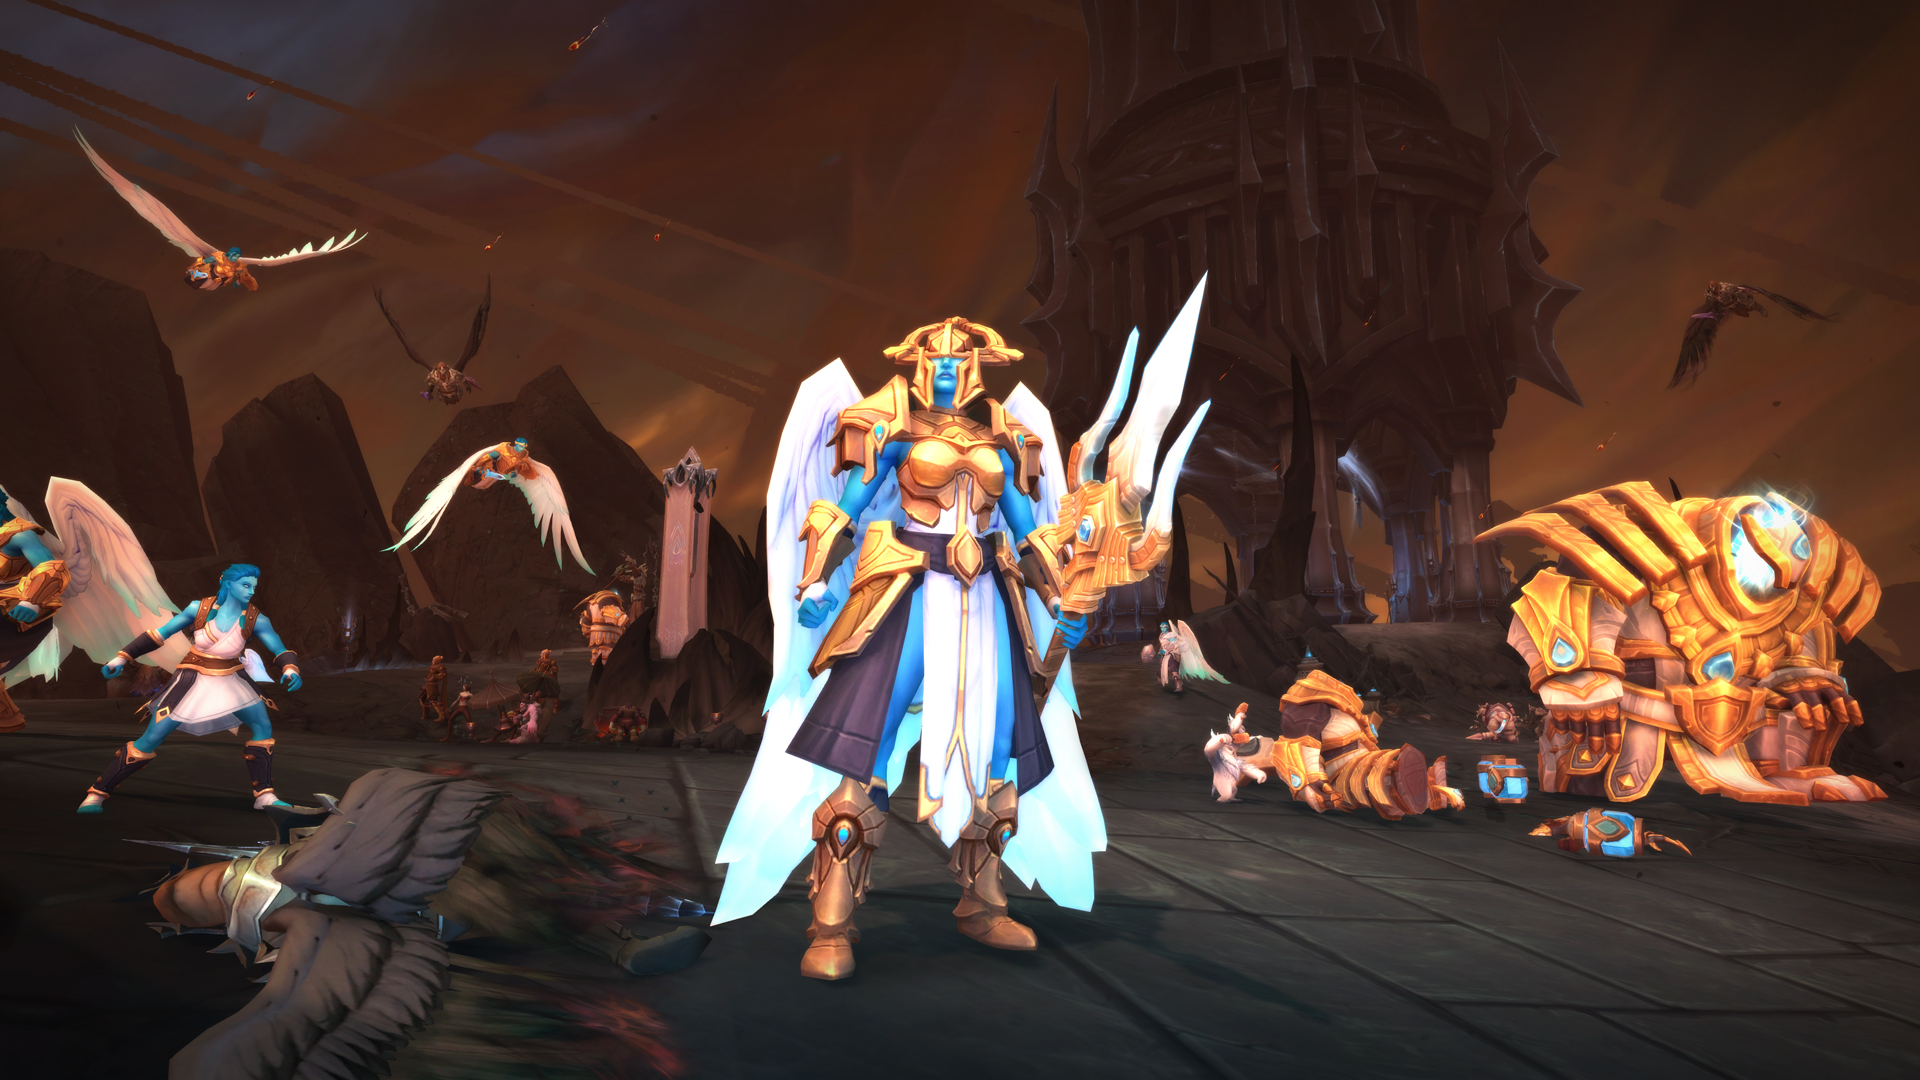 World of Warcraft: Shadowlands - A Kyrian, in gold and white armor, battles through the death-themed armies of the Maw